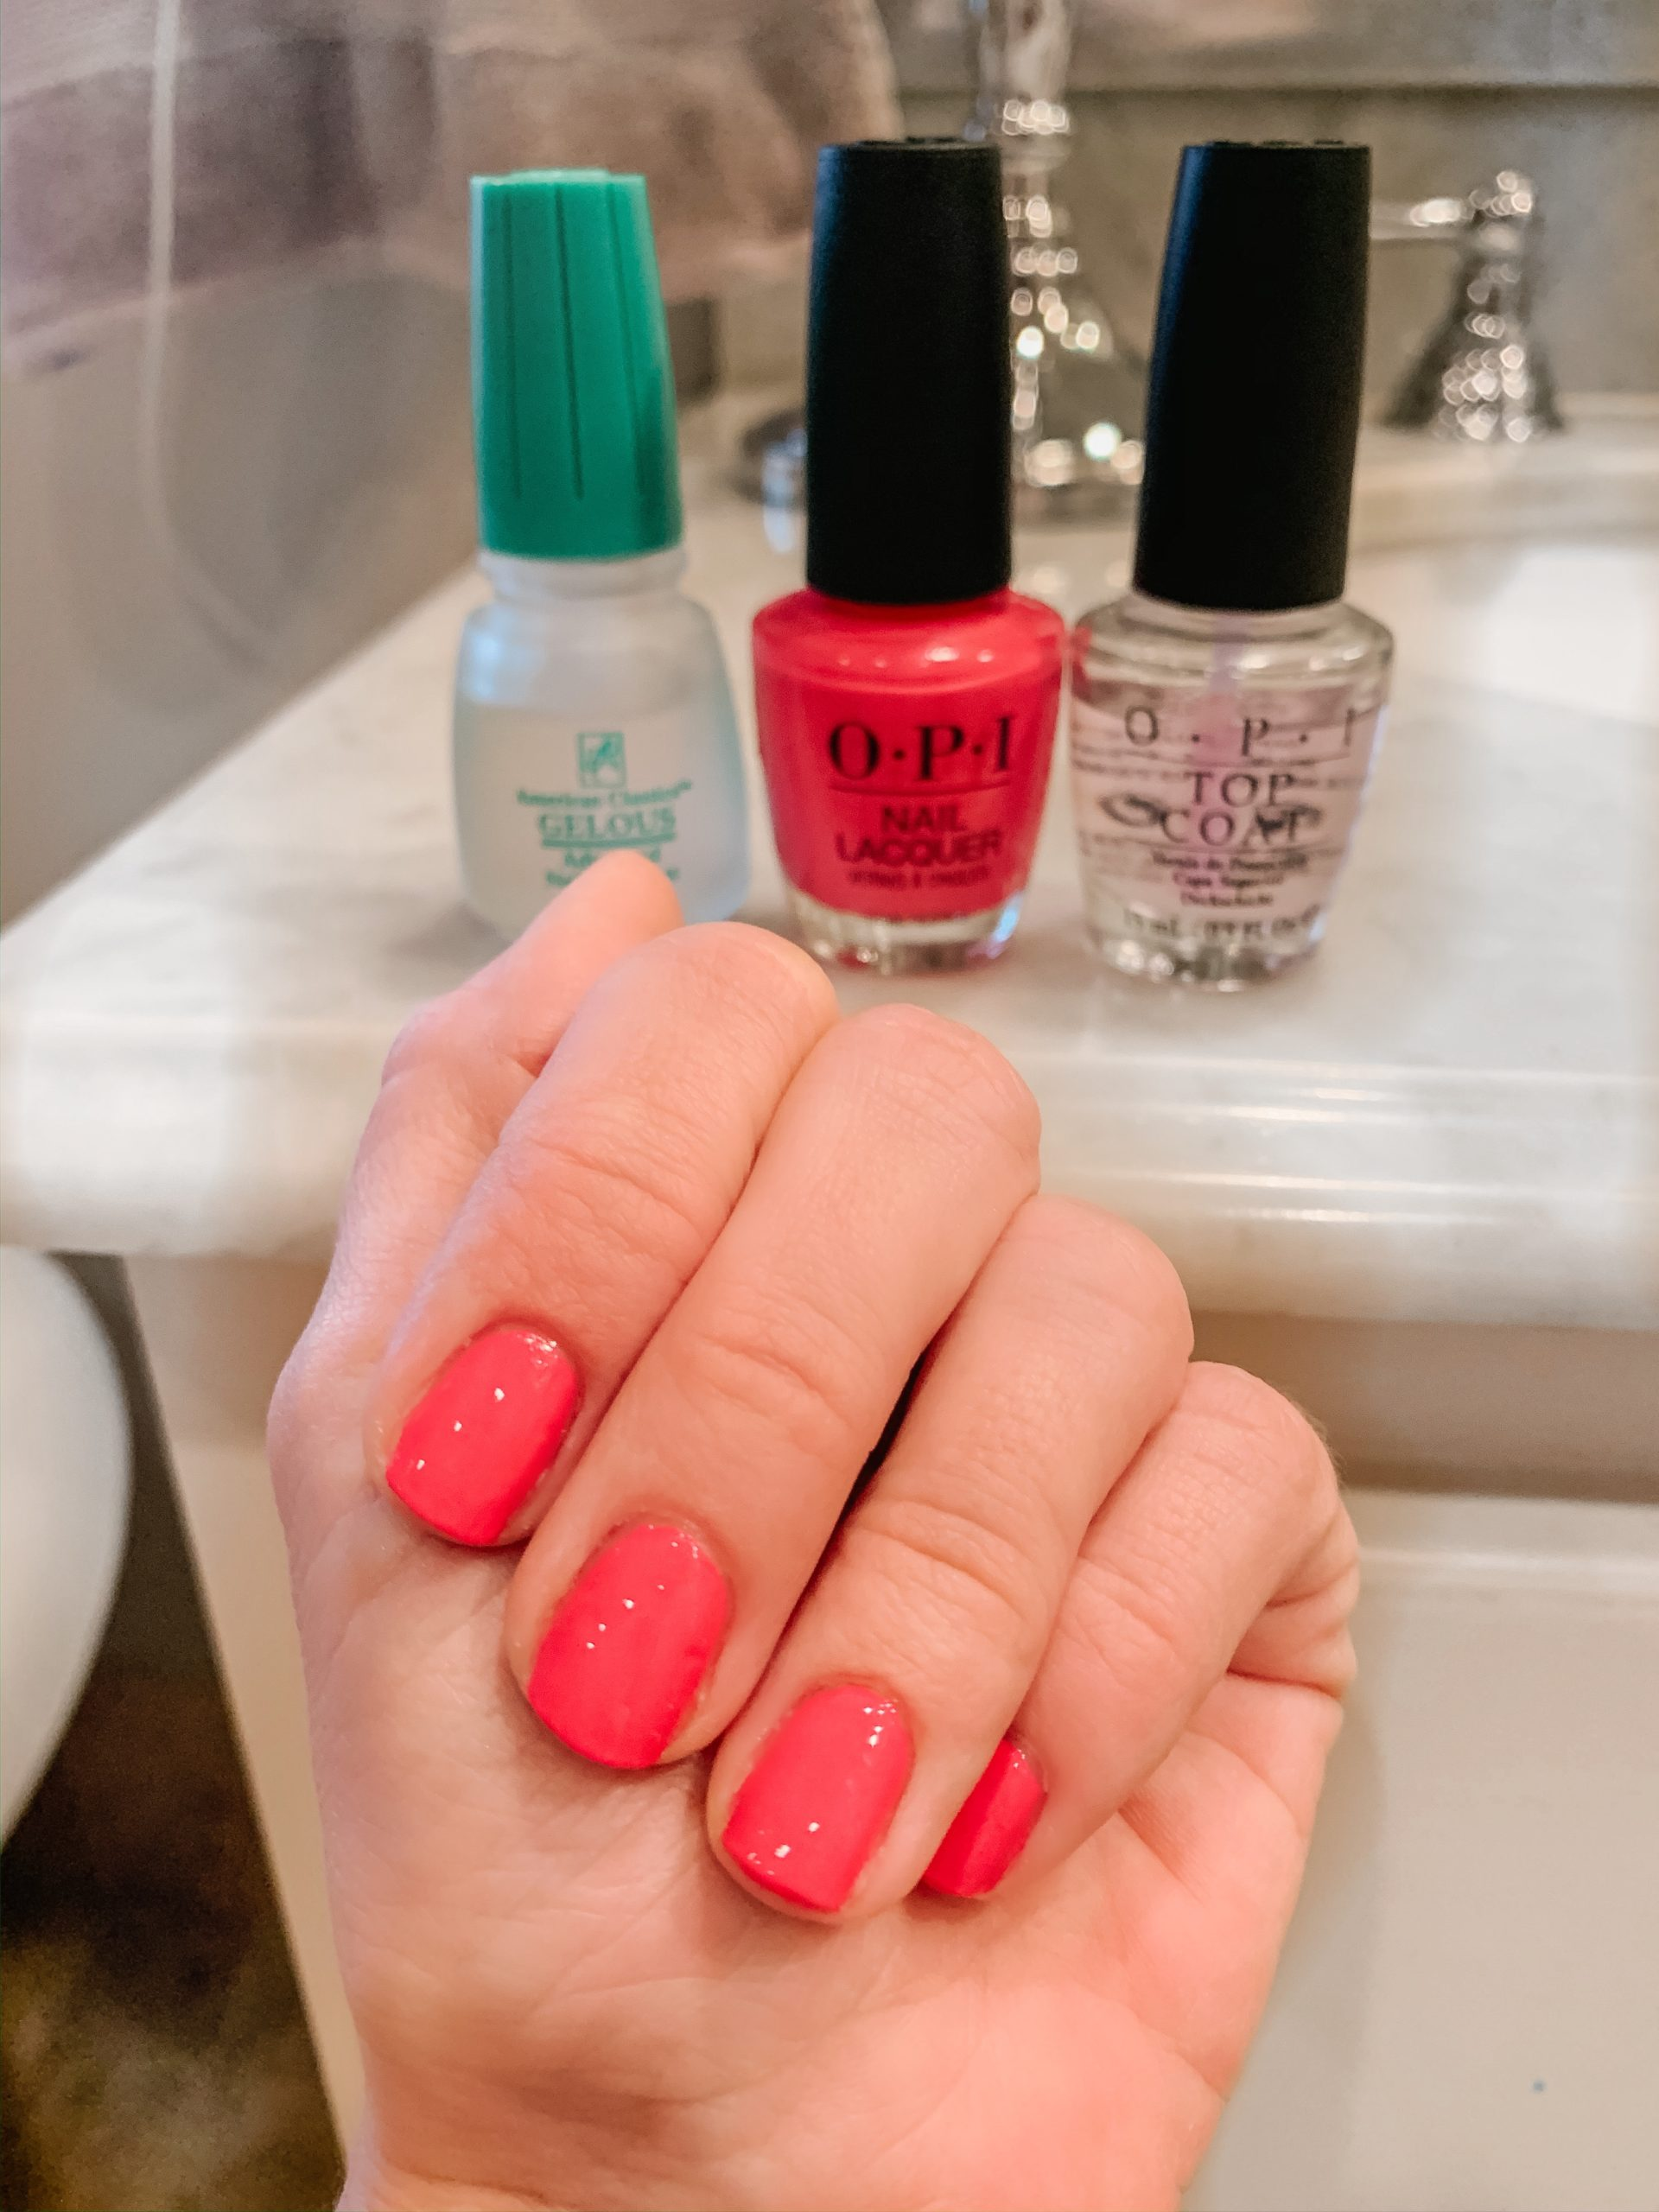 How to Get Gel Manicure at Home without UV Light